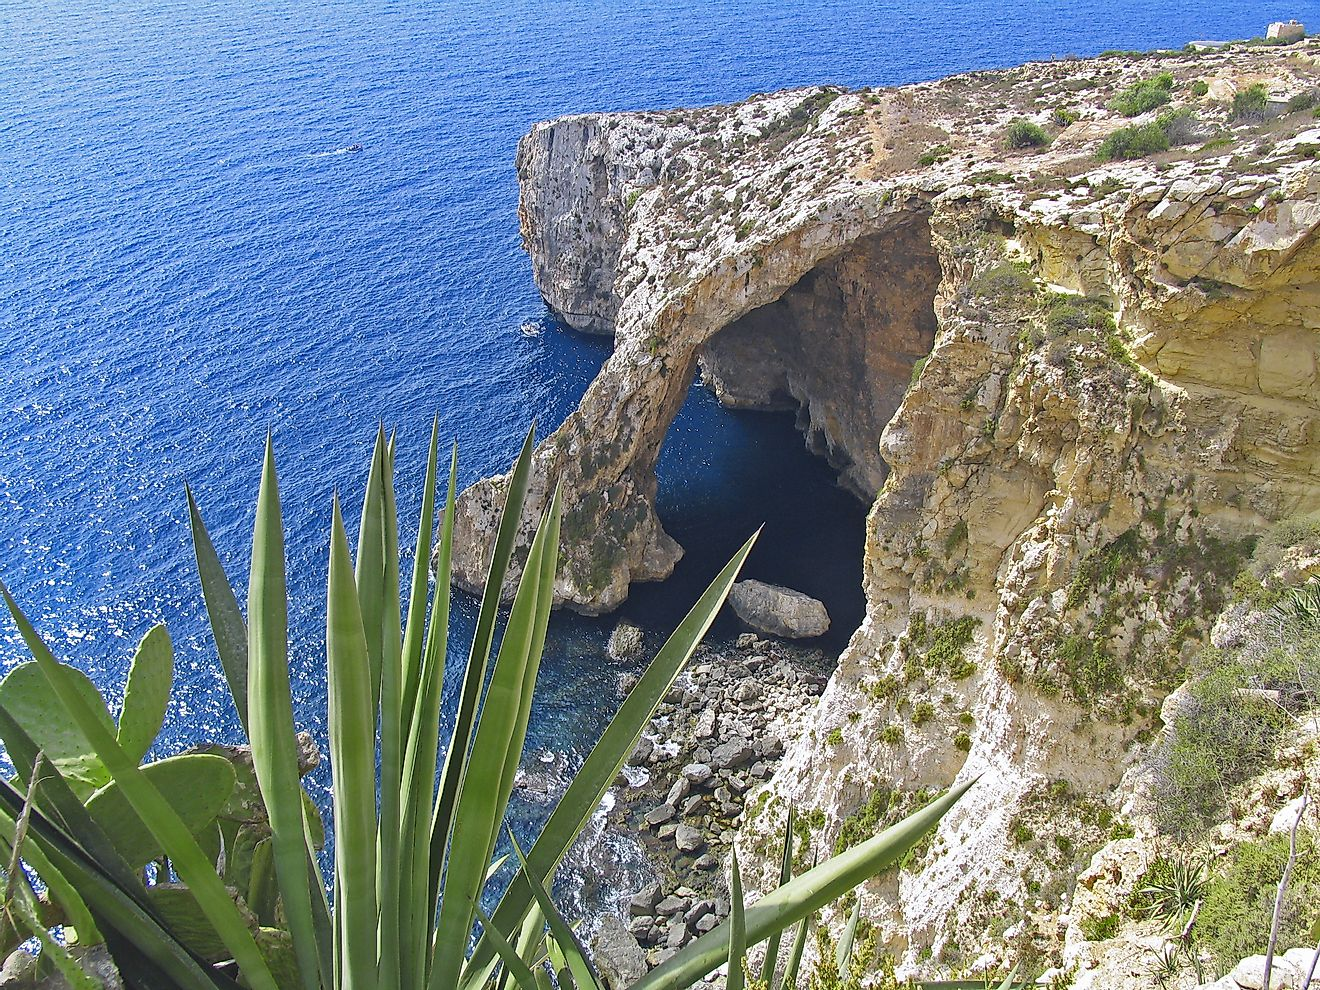 Il-Hnejja, the famous natural arch that extends over and into the waters of Malta's Blue Grotto.